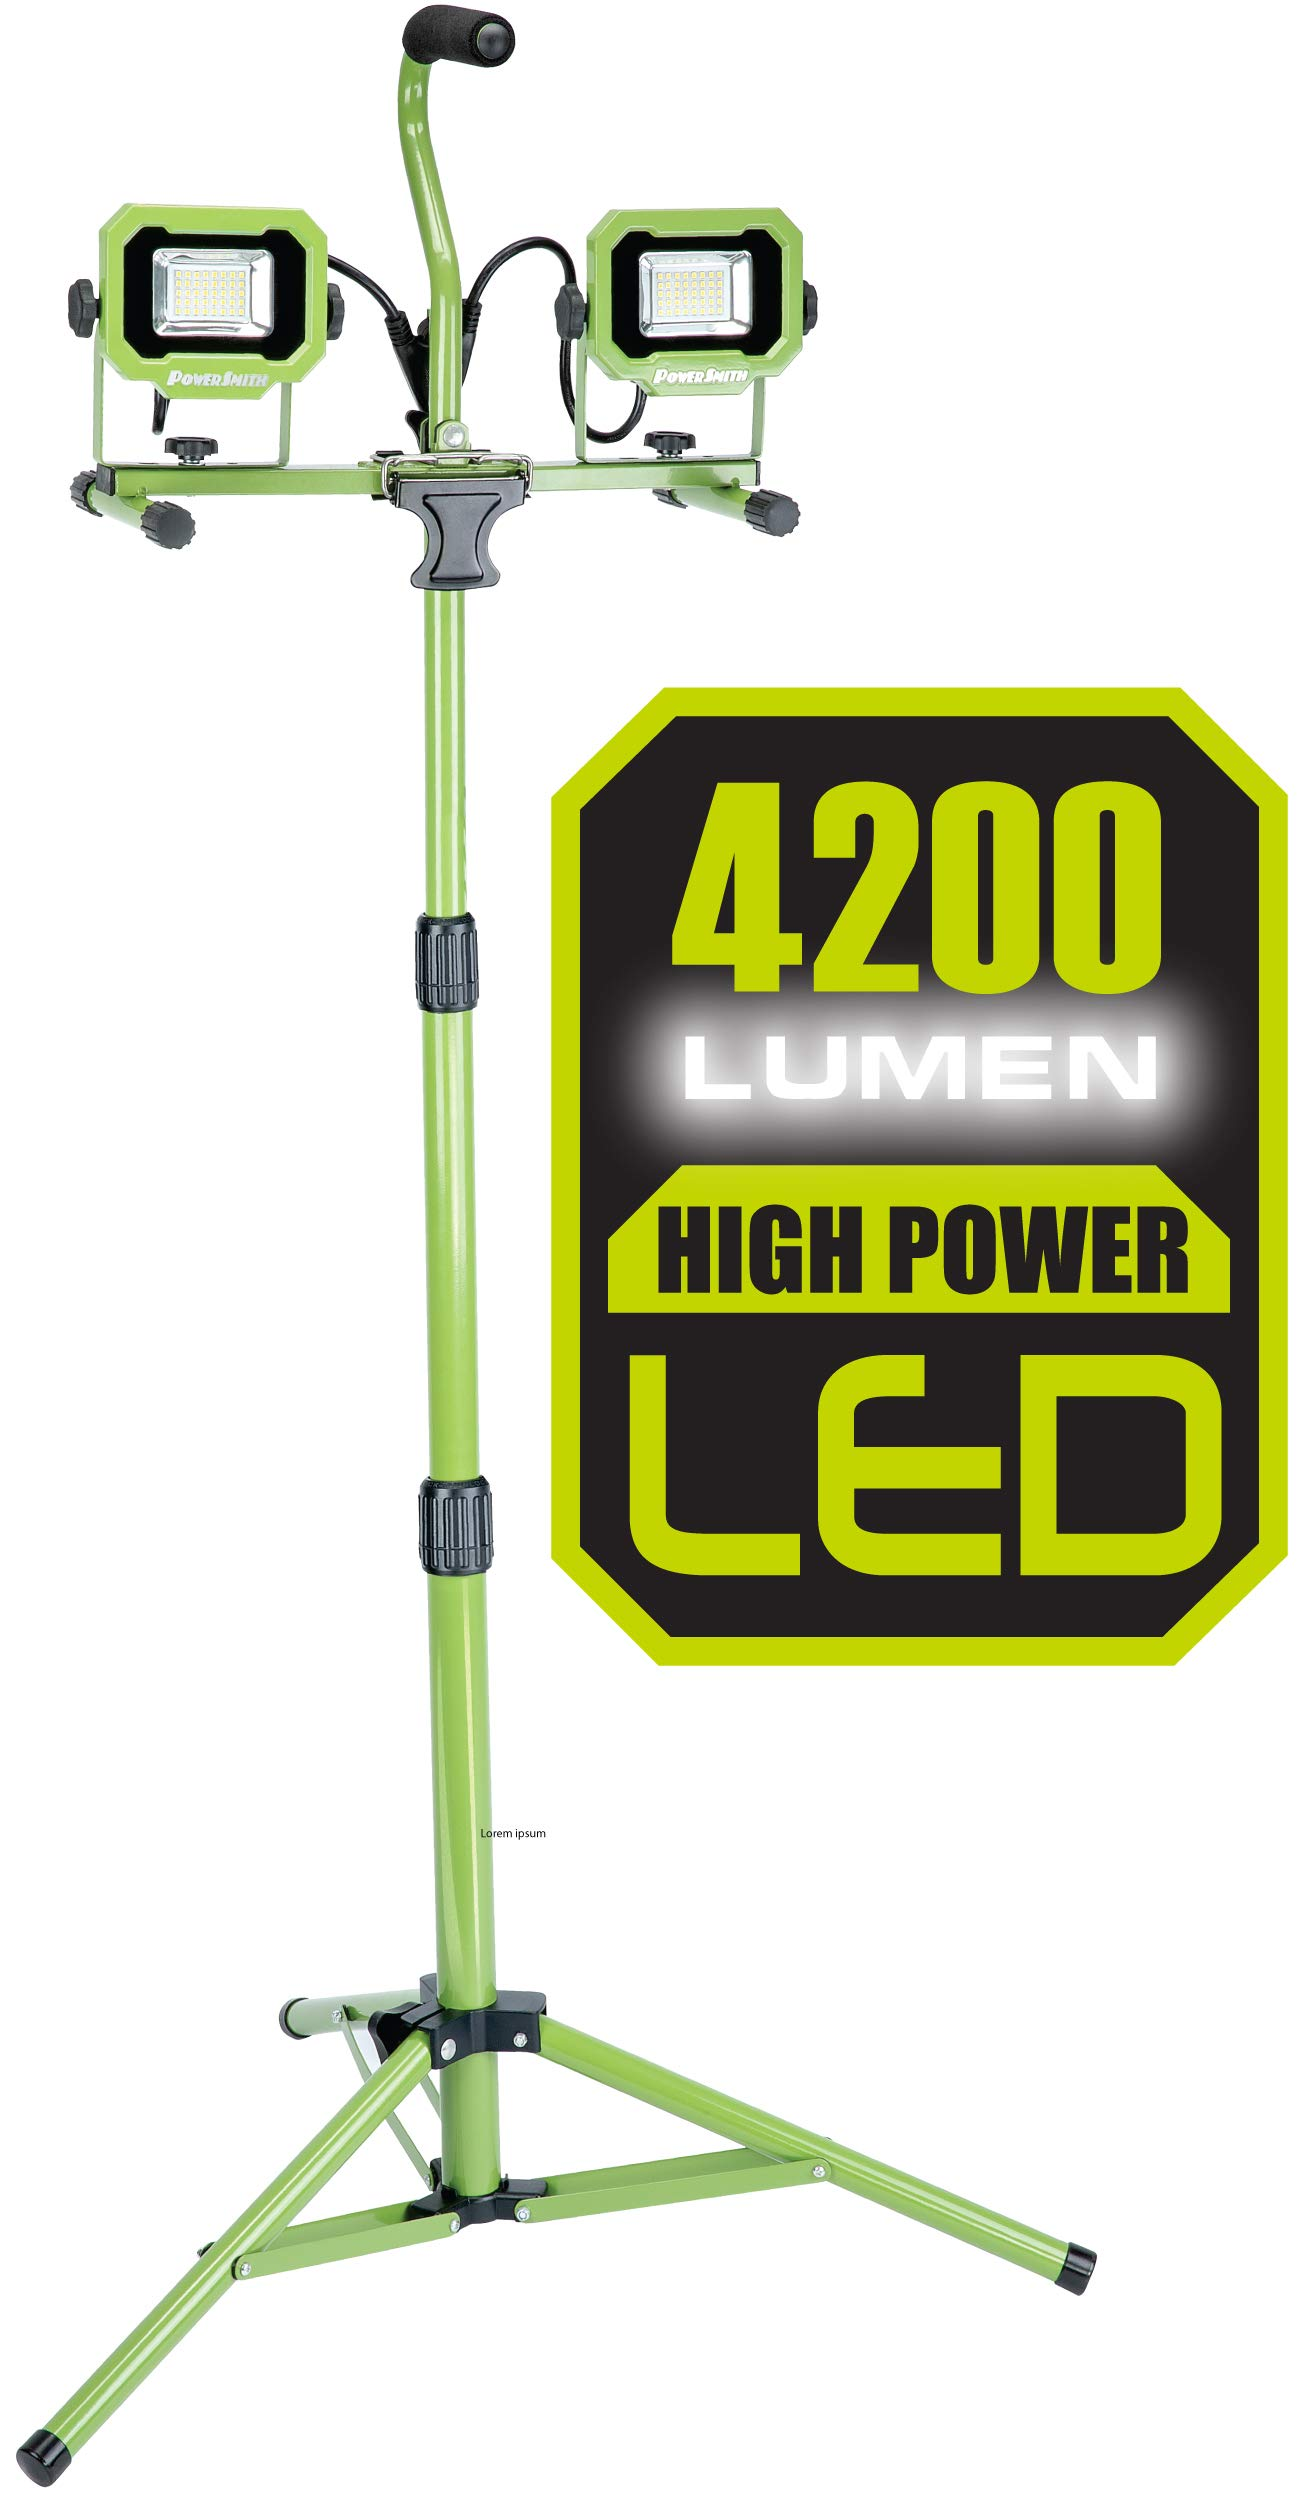 PowerSmith PWL2042TS 4,200 Lumen Dual Head LED Work Light with Adjustable Metal Telescoping Tripod and 9ft Power Cord, Green by POWERSMITH